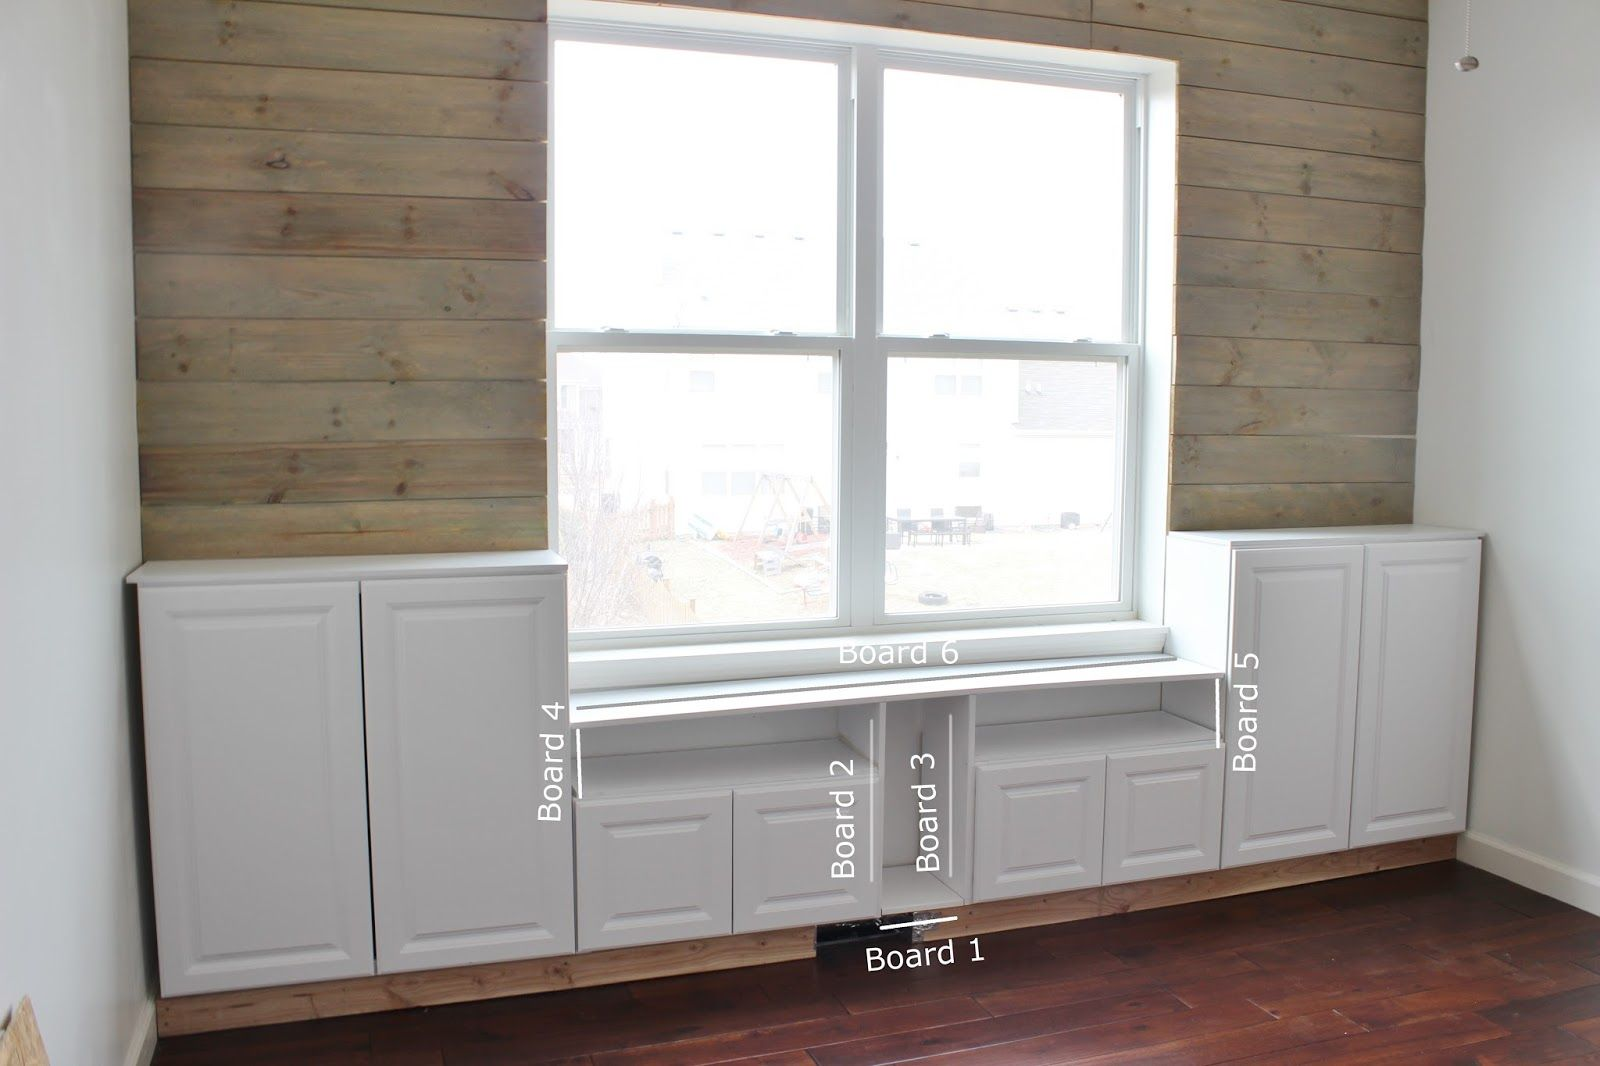 Remodelaholic Playroom Makeover With Built In Cabinets For Storage In 2020 Built In Cabinets Bedroom Built Ins Baseboard Heating